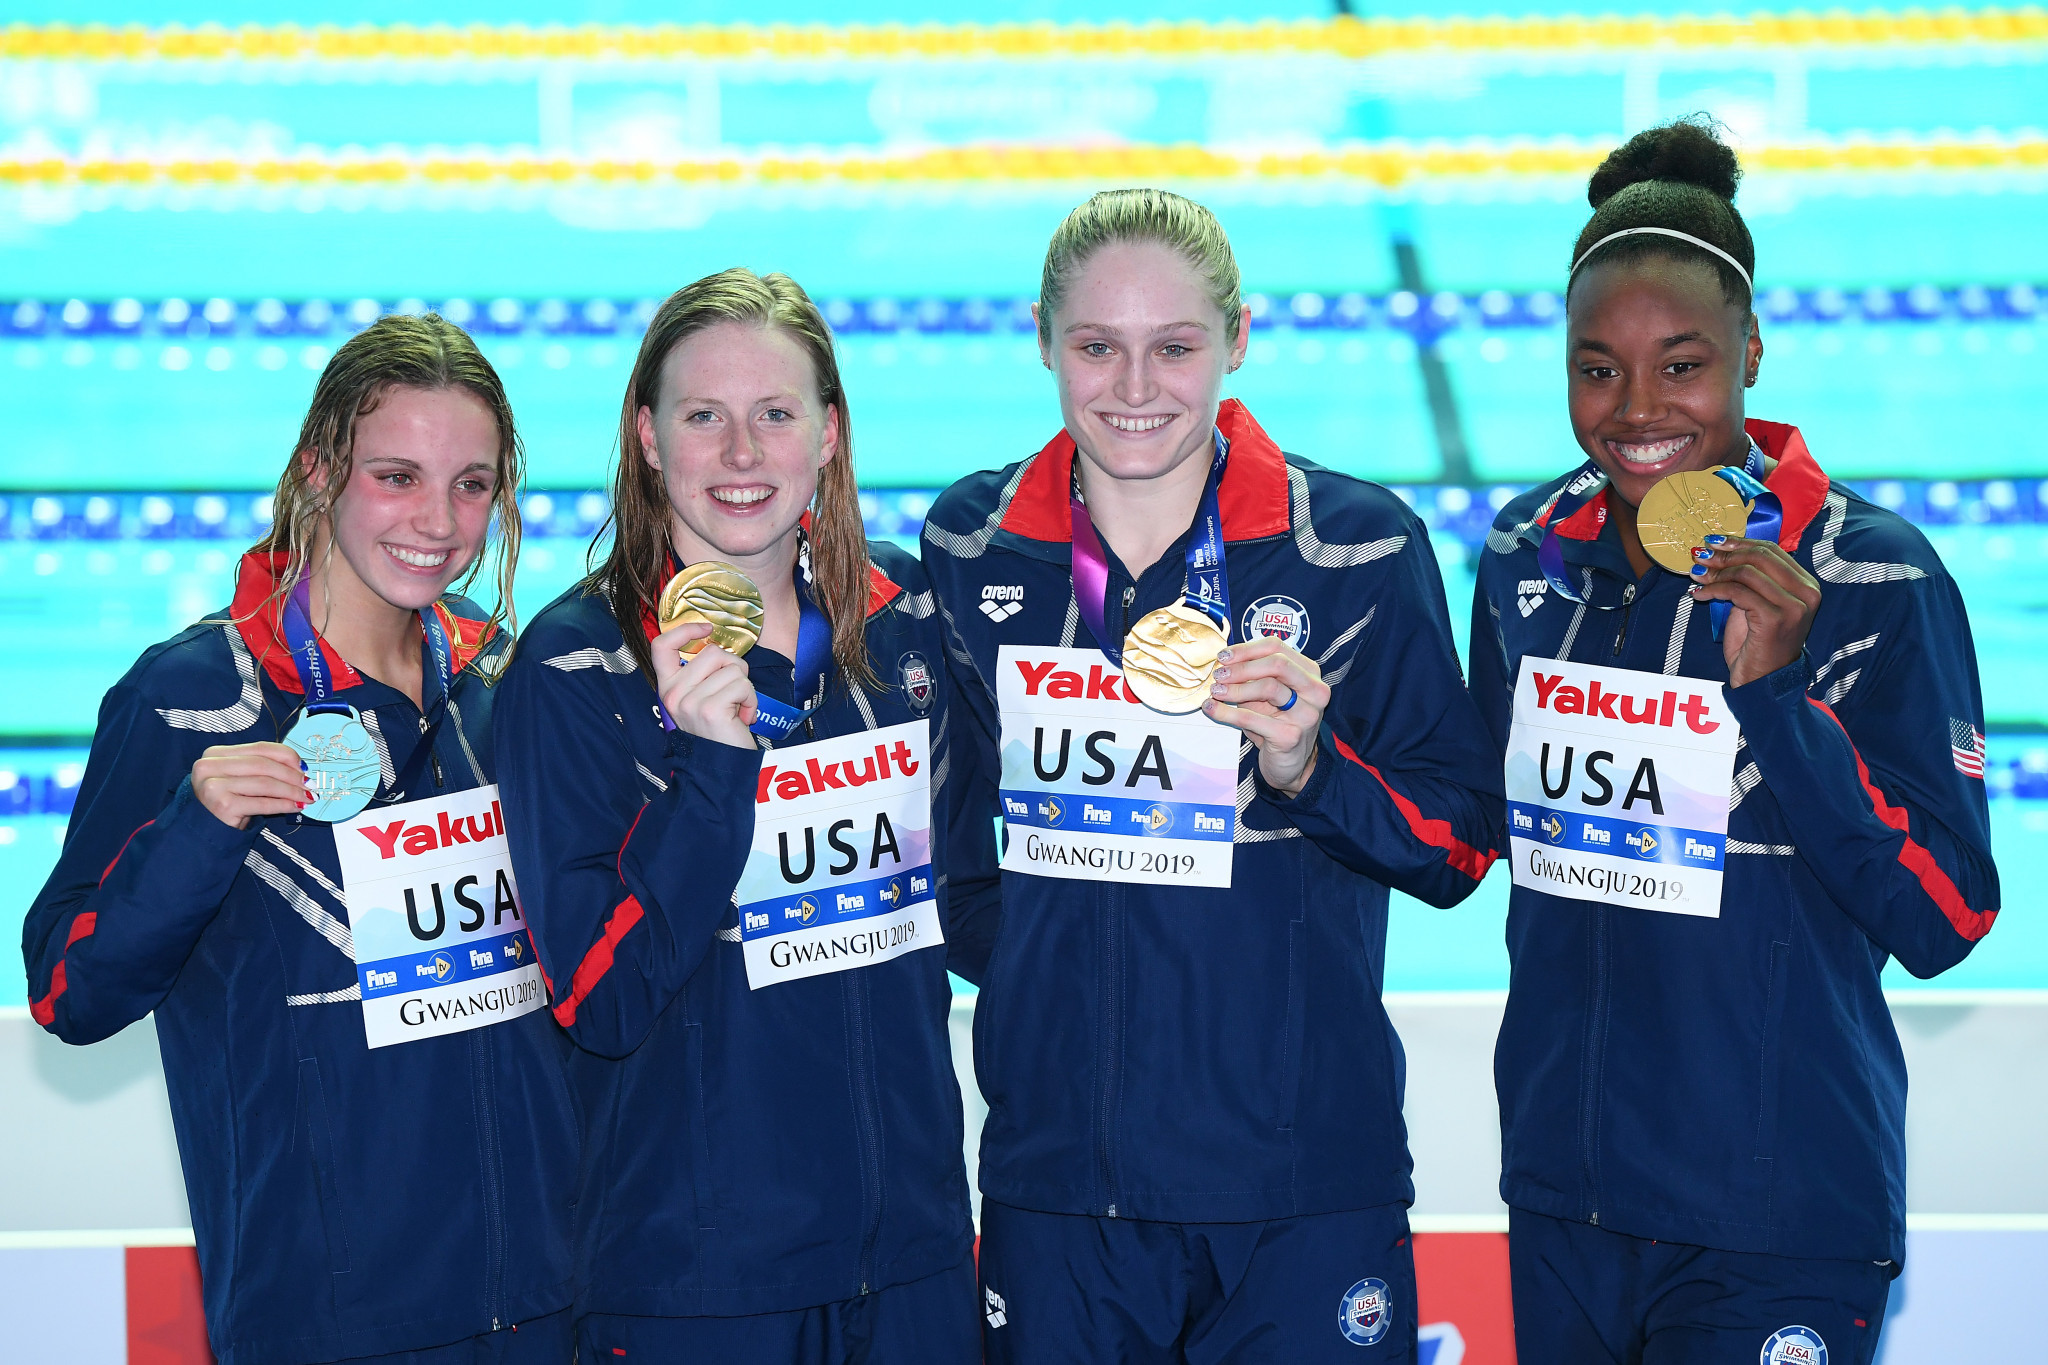 United States break women's medley world record for 13th gold on 2019 World Aquatics Championships final day